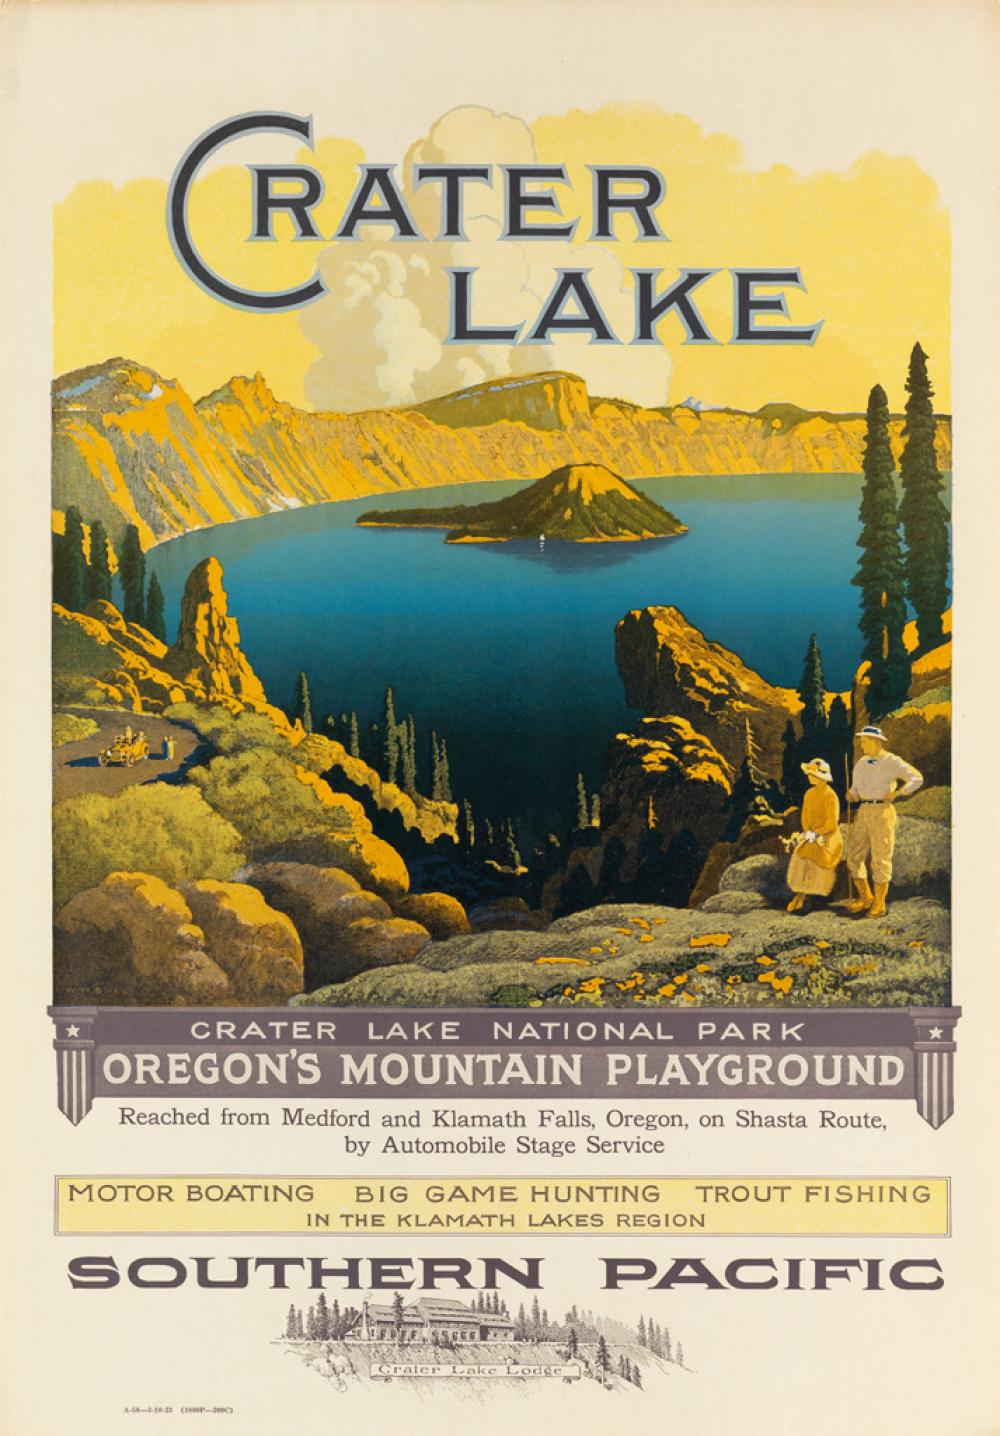 WILLIAM H. BULL (1861-1940). CRATER LAKE / SOUTHERN PACIFIC. 1923. 23x16 inches, 58x40 cm.